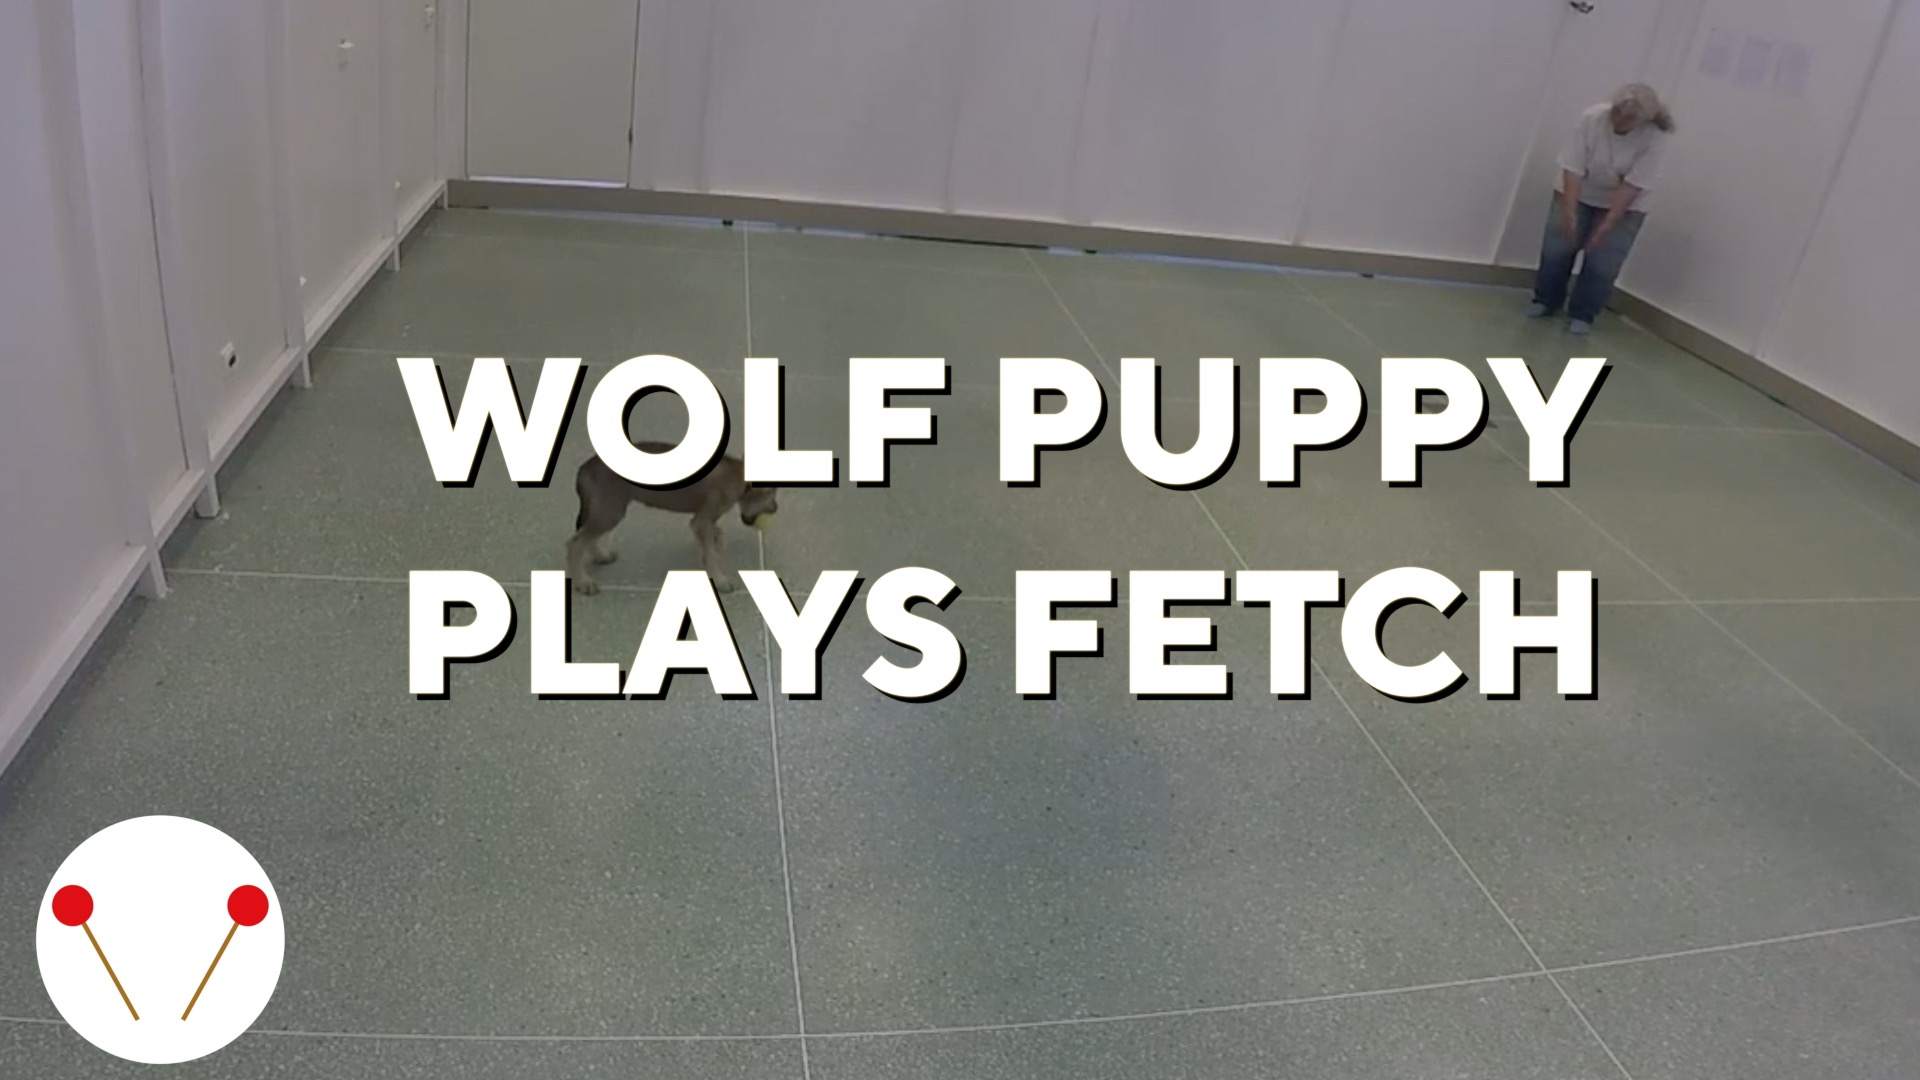 Wolf puppy plays fetch, amazing scientists